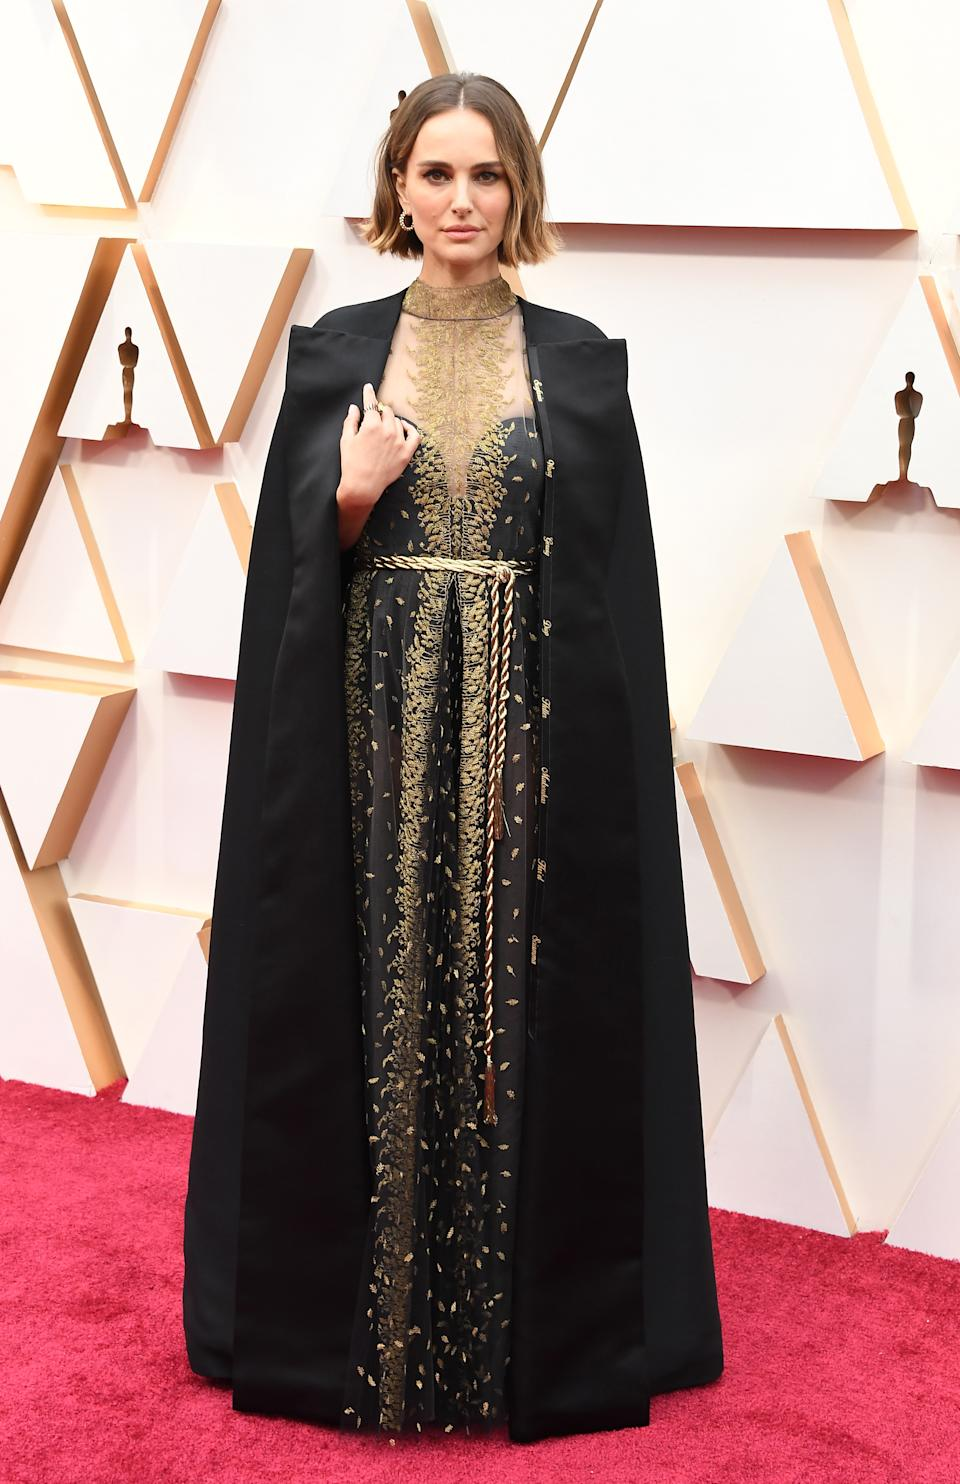 HOLLYWOOD, CALIFORNIA - FEBRUARY 09: Natalie Portman attends the 92nd Annual Academy Awards at Hollywood and Highland on February 09, 2020 in Hollywood, California. (Photo by Steve Granitz/WireImage)